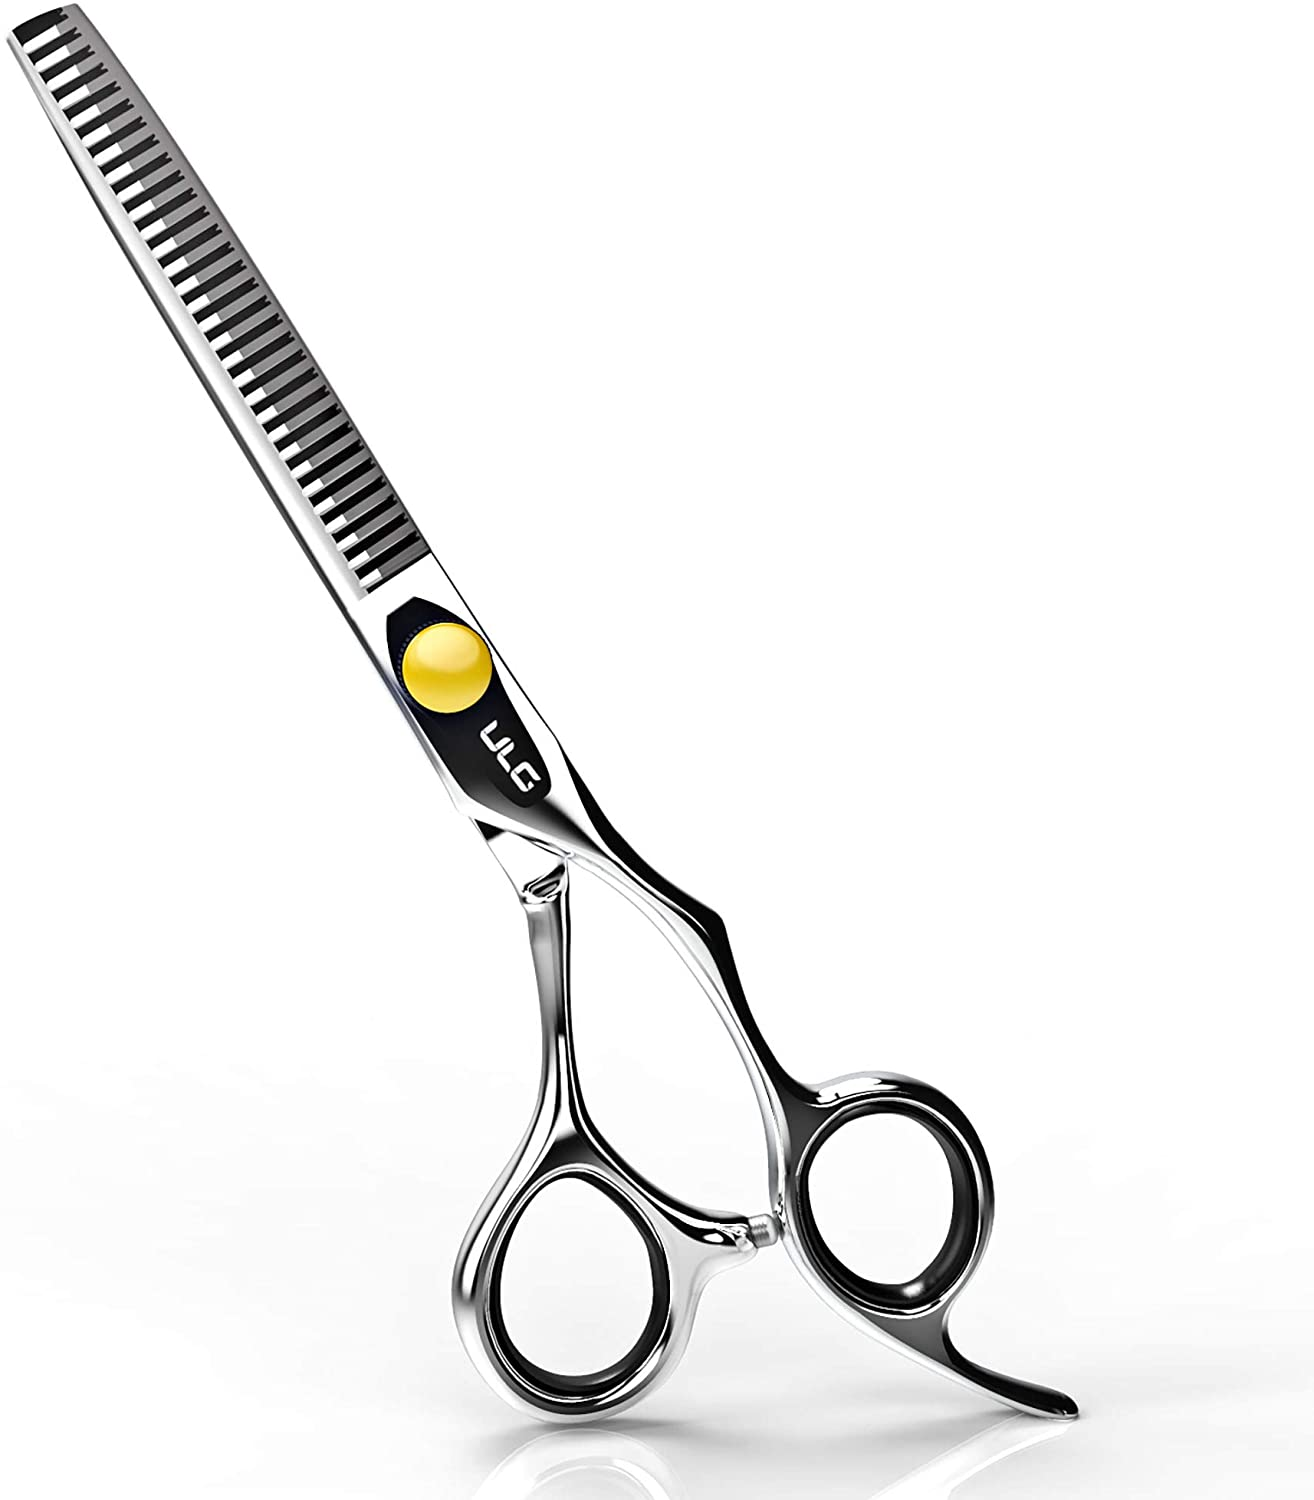 ULG Hair Thinning Scissors with 30 teeth